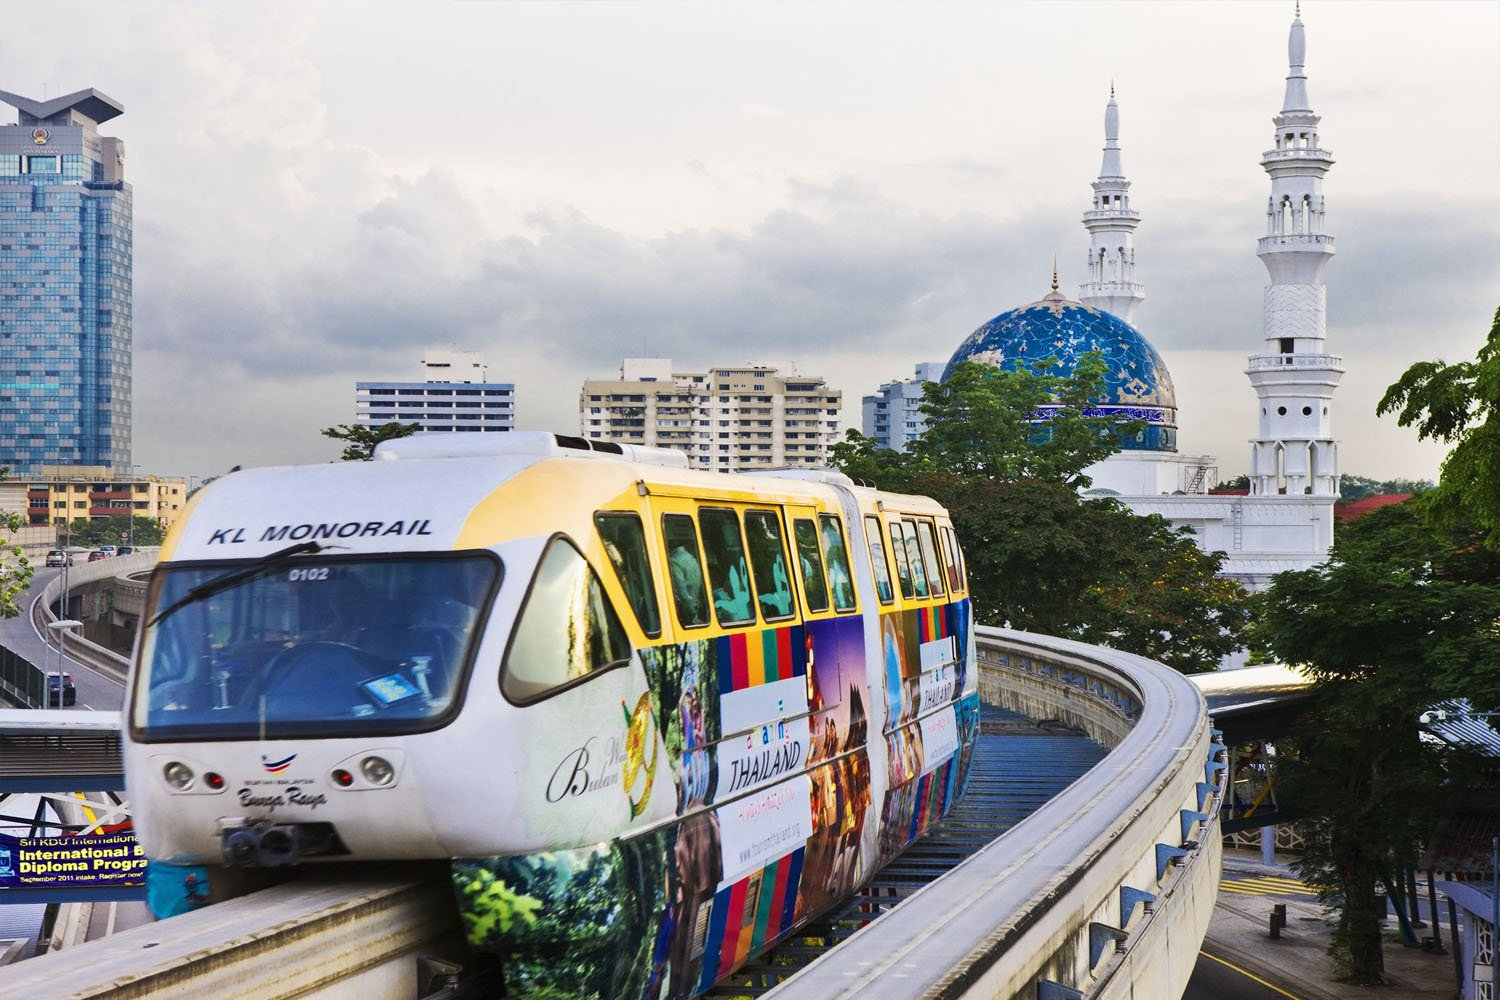 LRT and Monorail